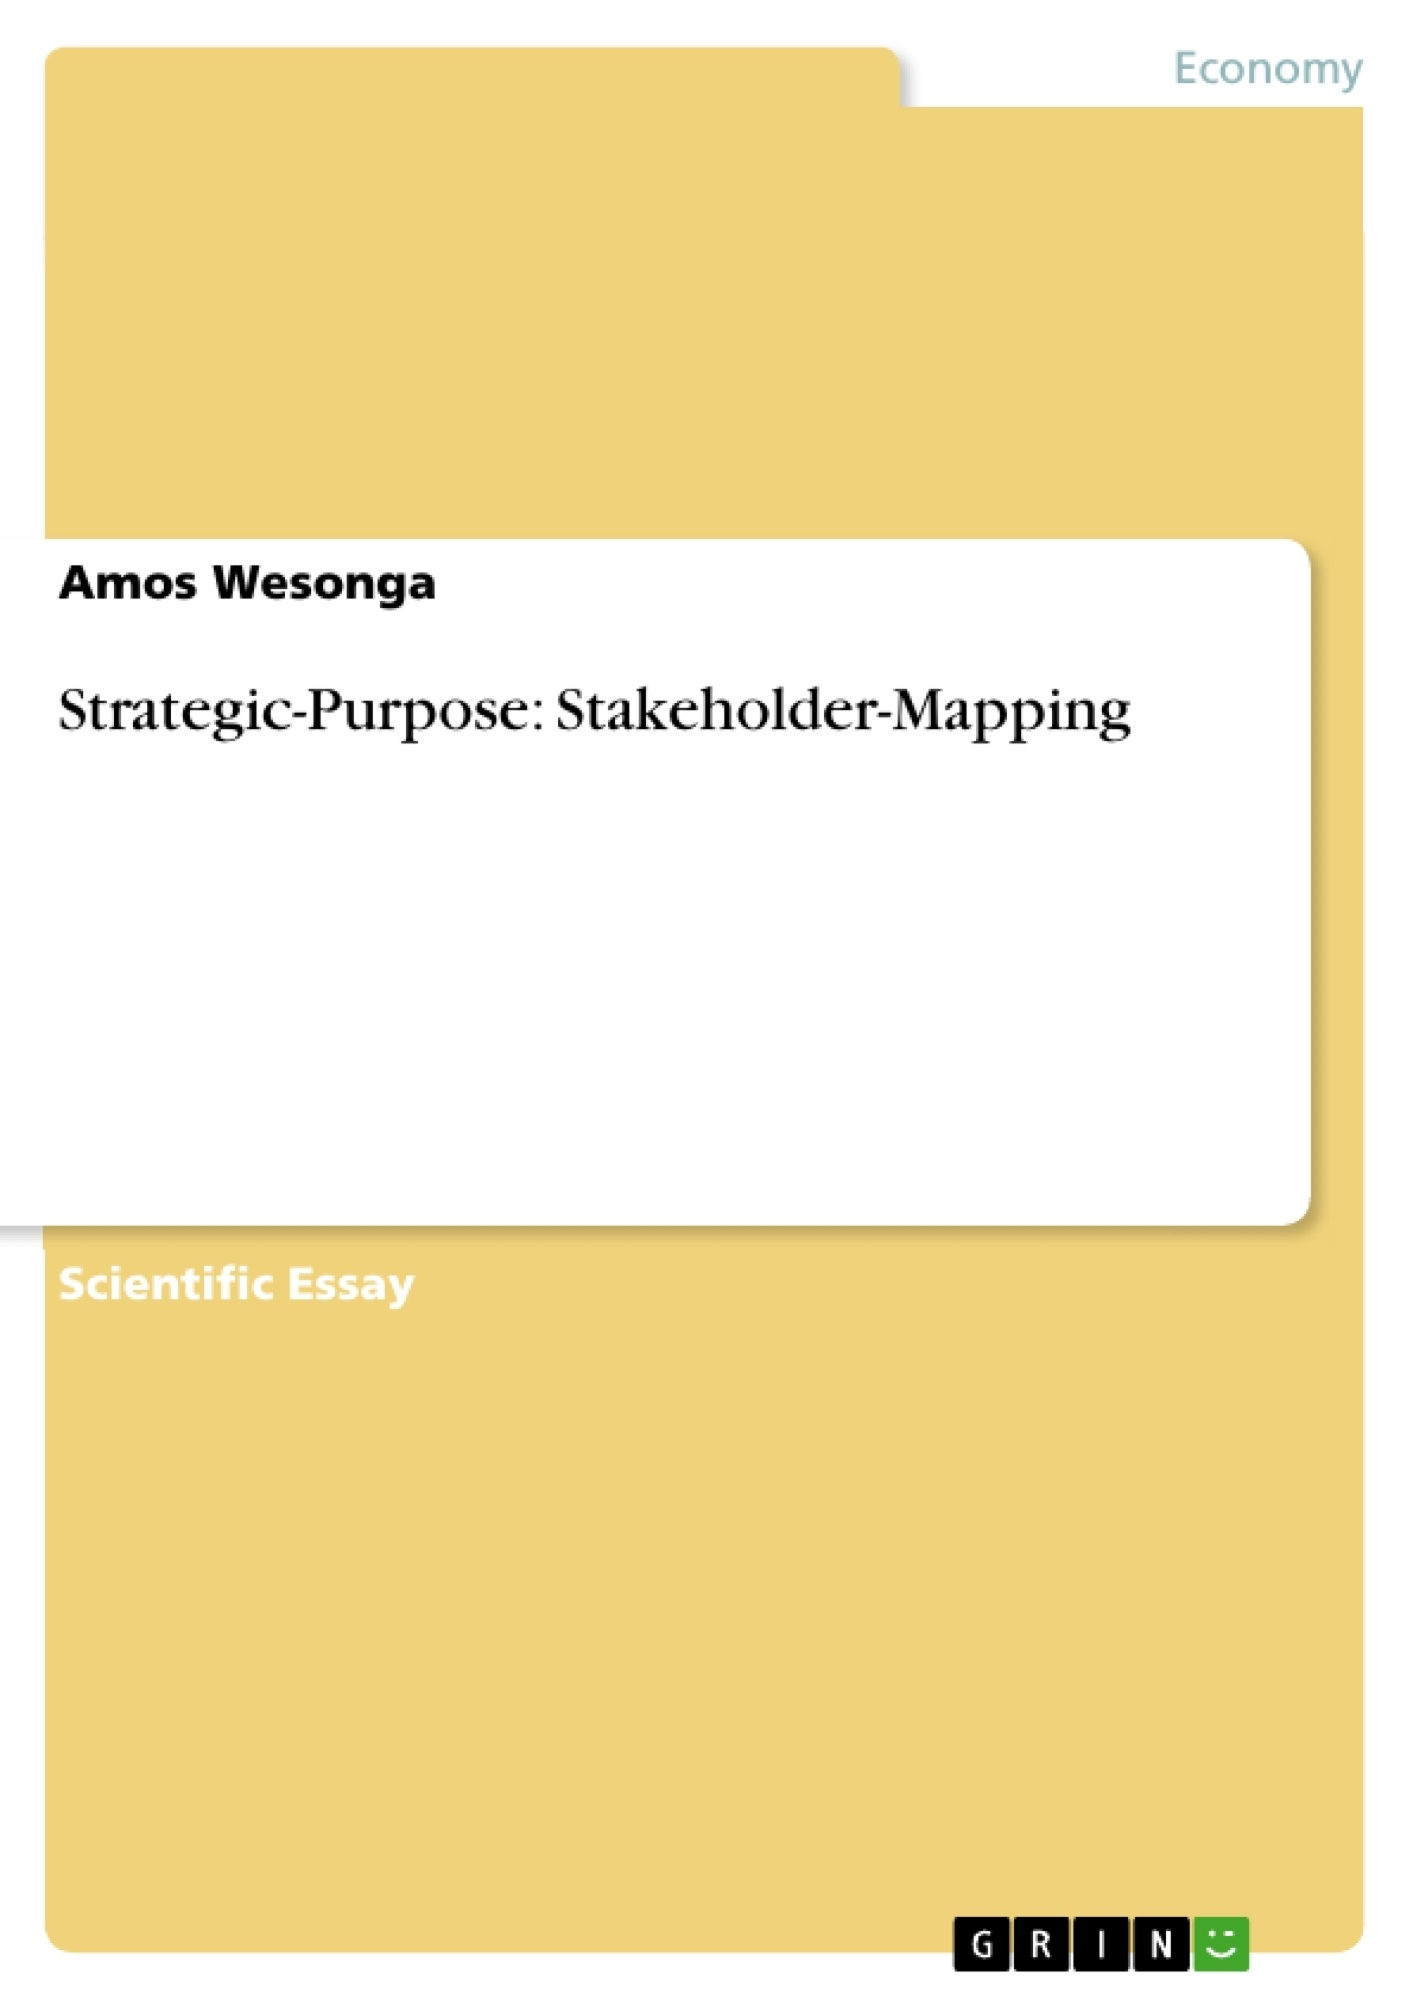 Title: Strategic-Purpose: Stakeholder-Mapping